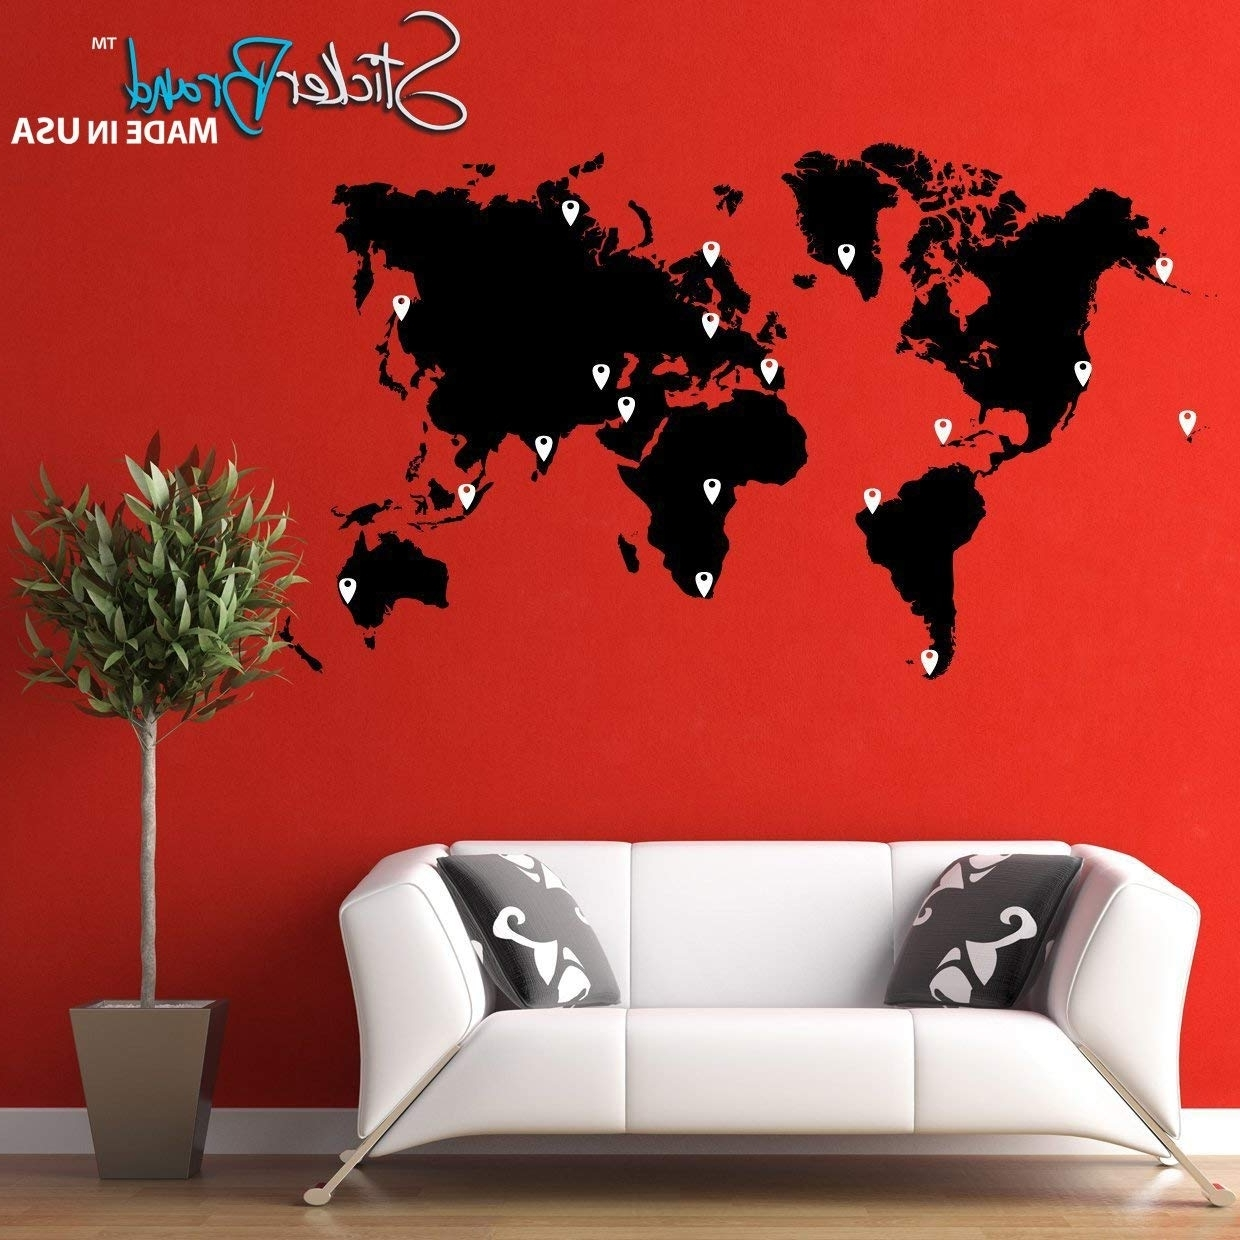 Trendy Vinyl Wall Art World Map With Regard To Amazon: Stickerbrand Vinyl Wall Art World Map Of Earth With Pin (View 2 of 15)